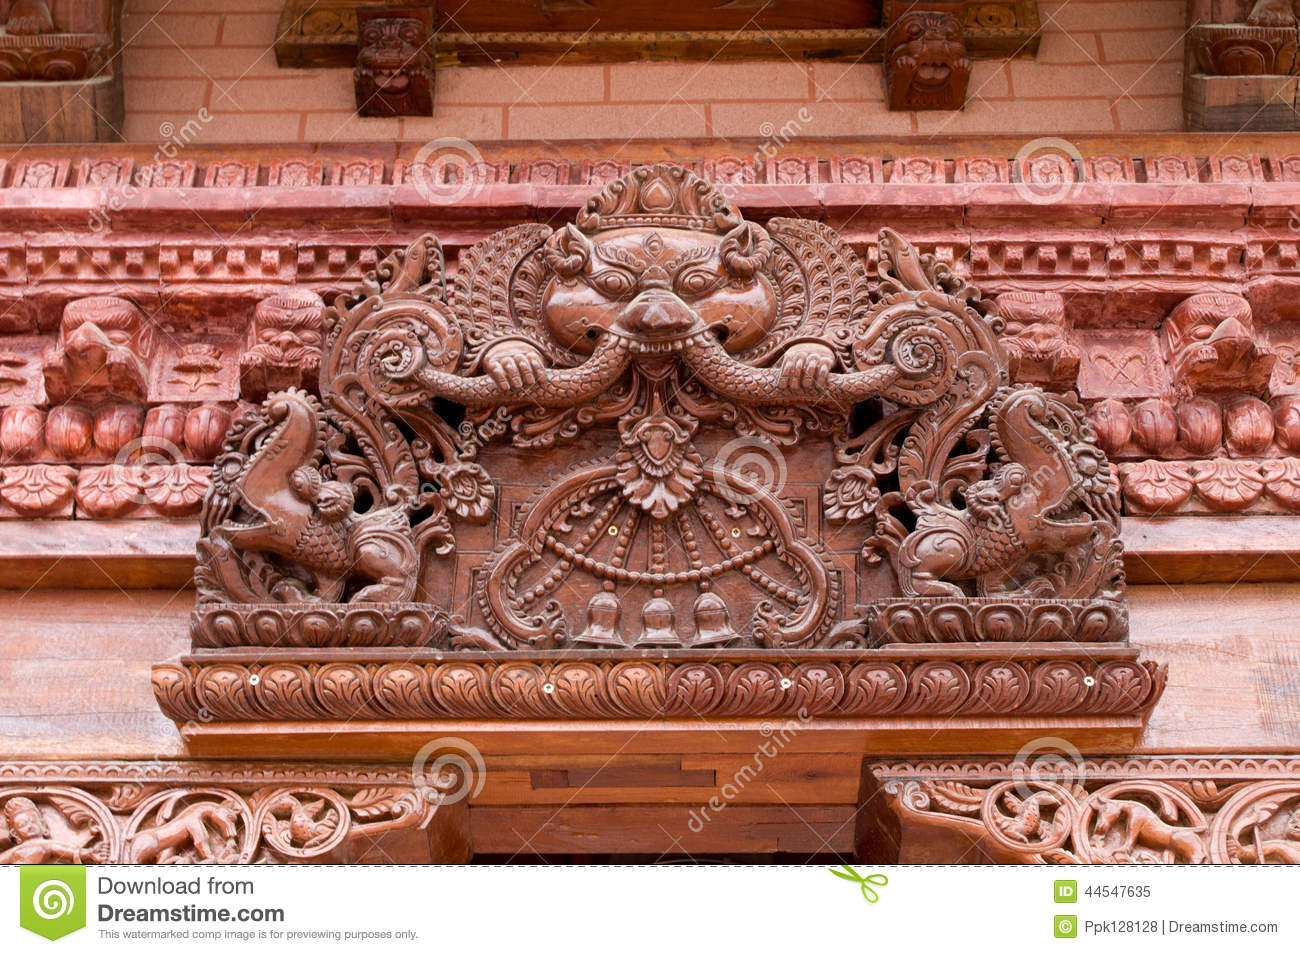 Decorative carvings stock image of artifact